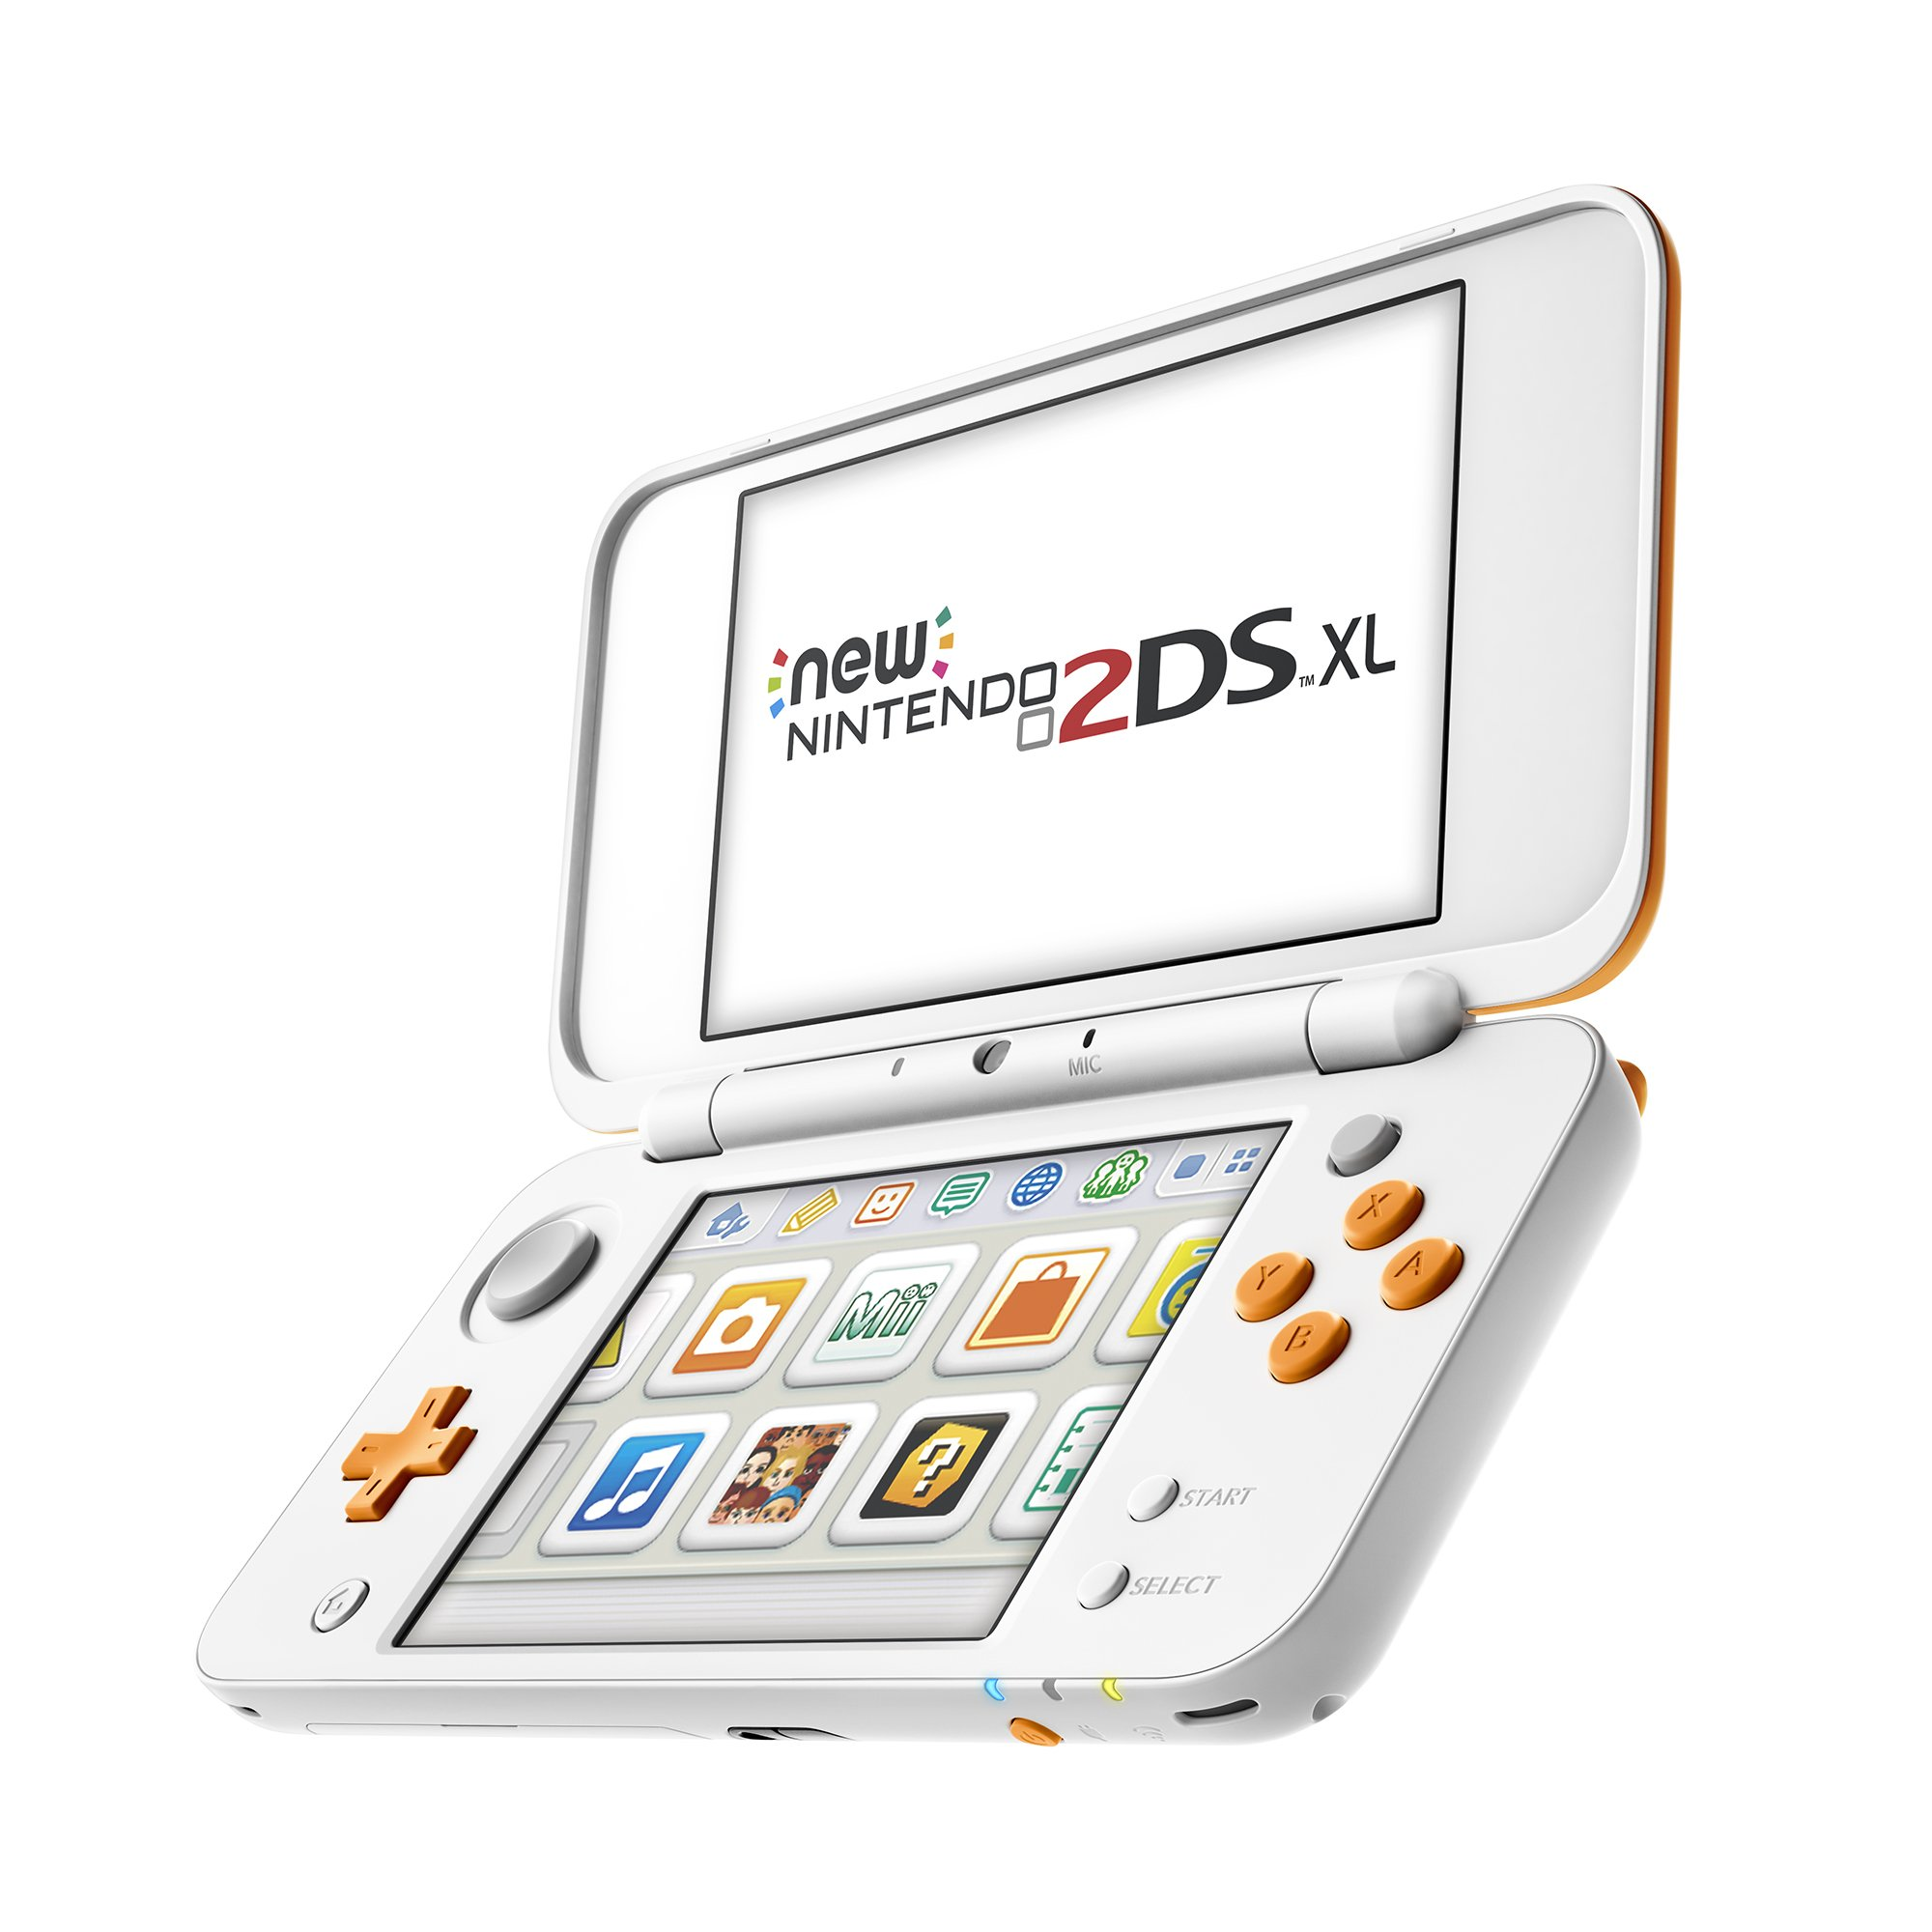 New Nintendo 2DS XL Handheld Game Console - Orange + White With Mario Kart 7 Pre-installed - Nintendo 2DS by Nintendo (Image #6)